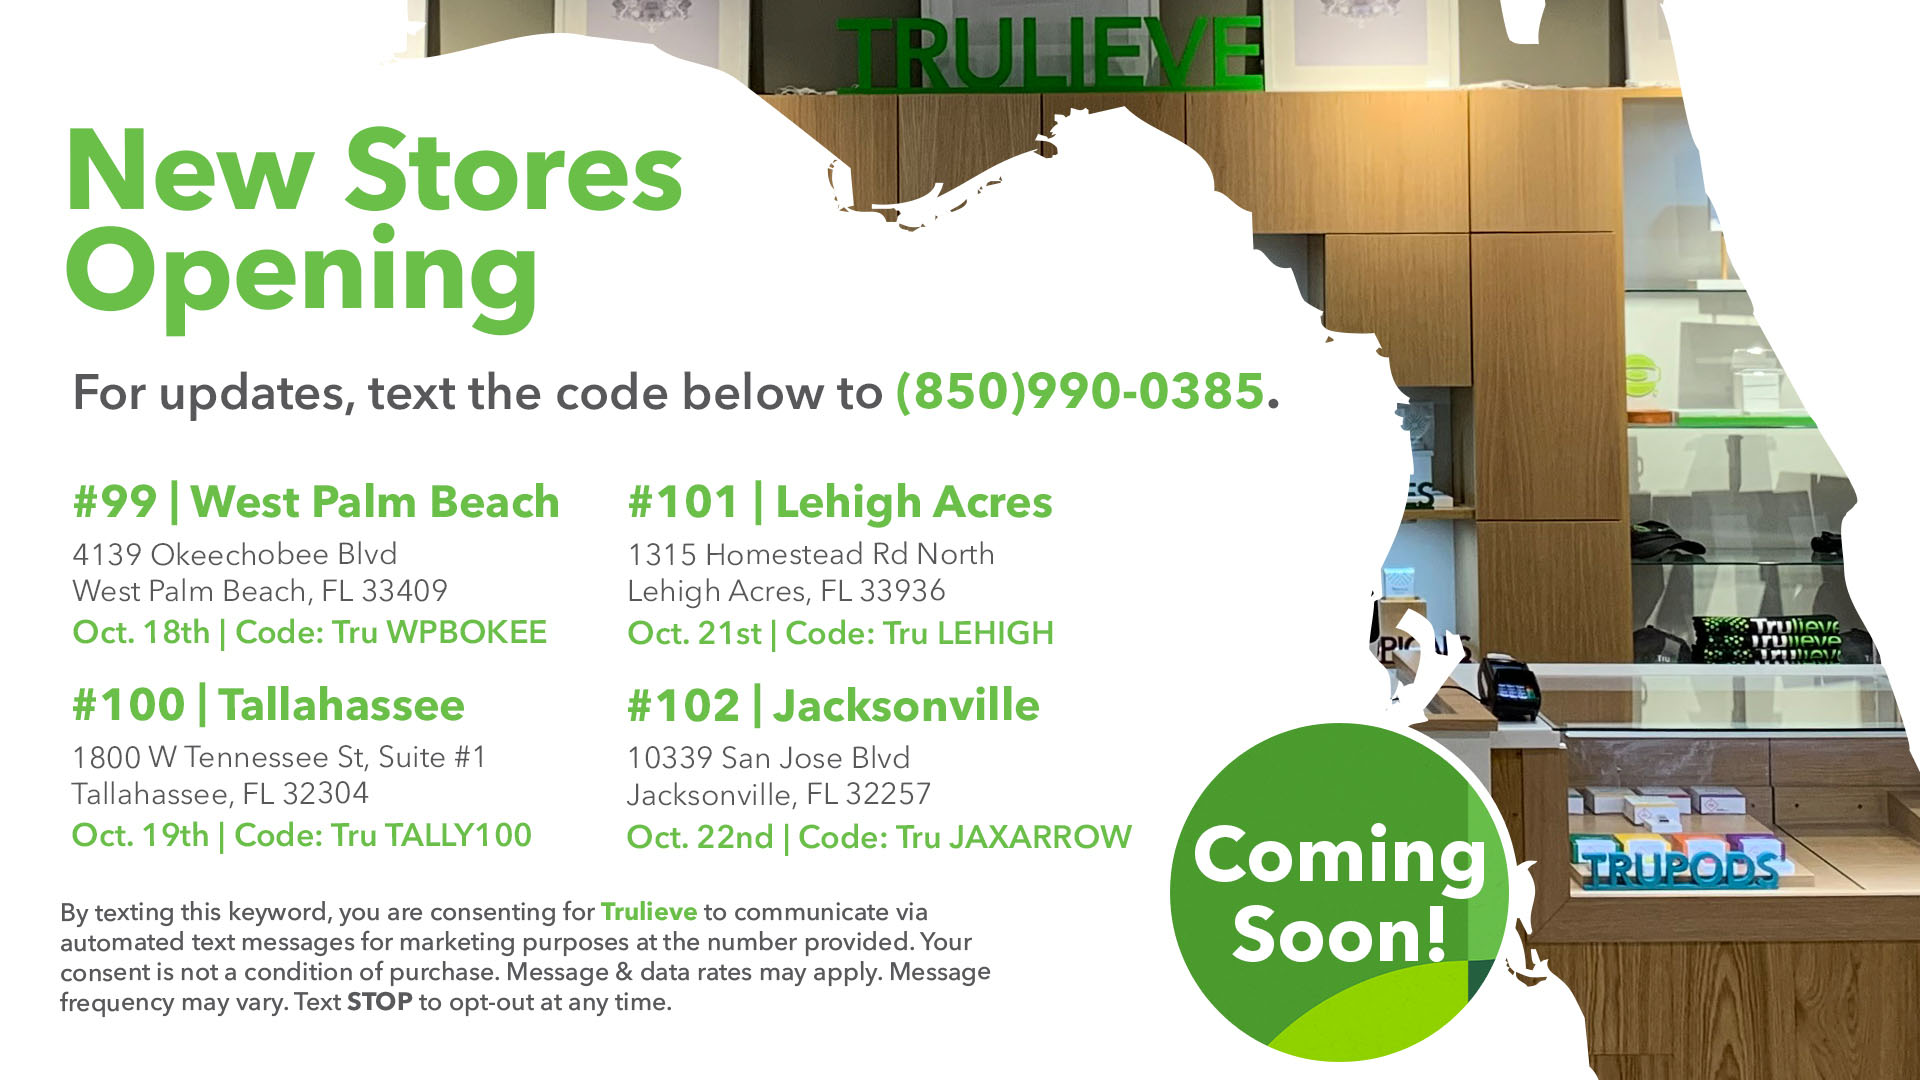 New Stores